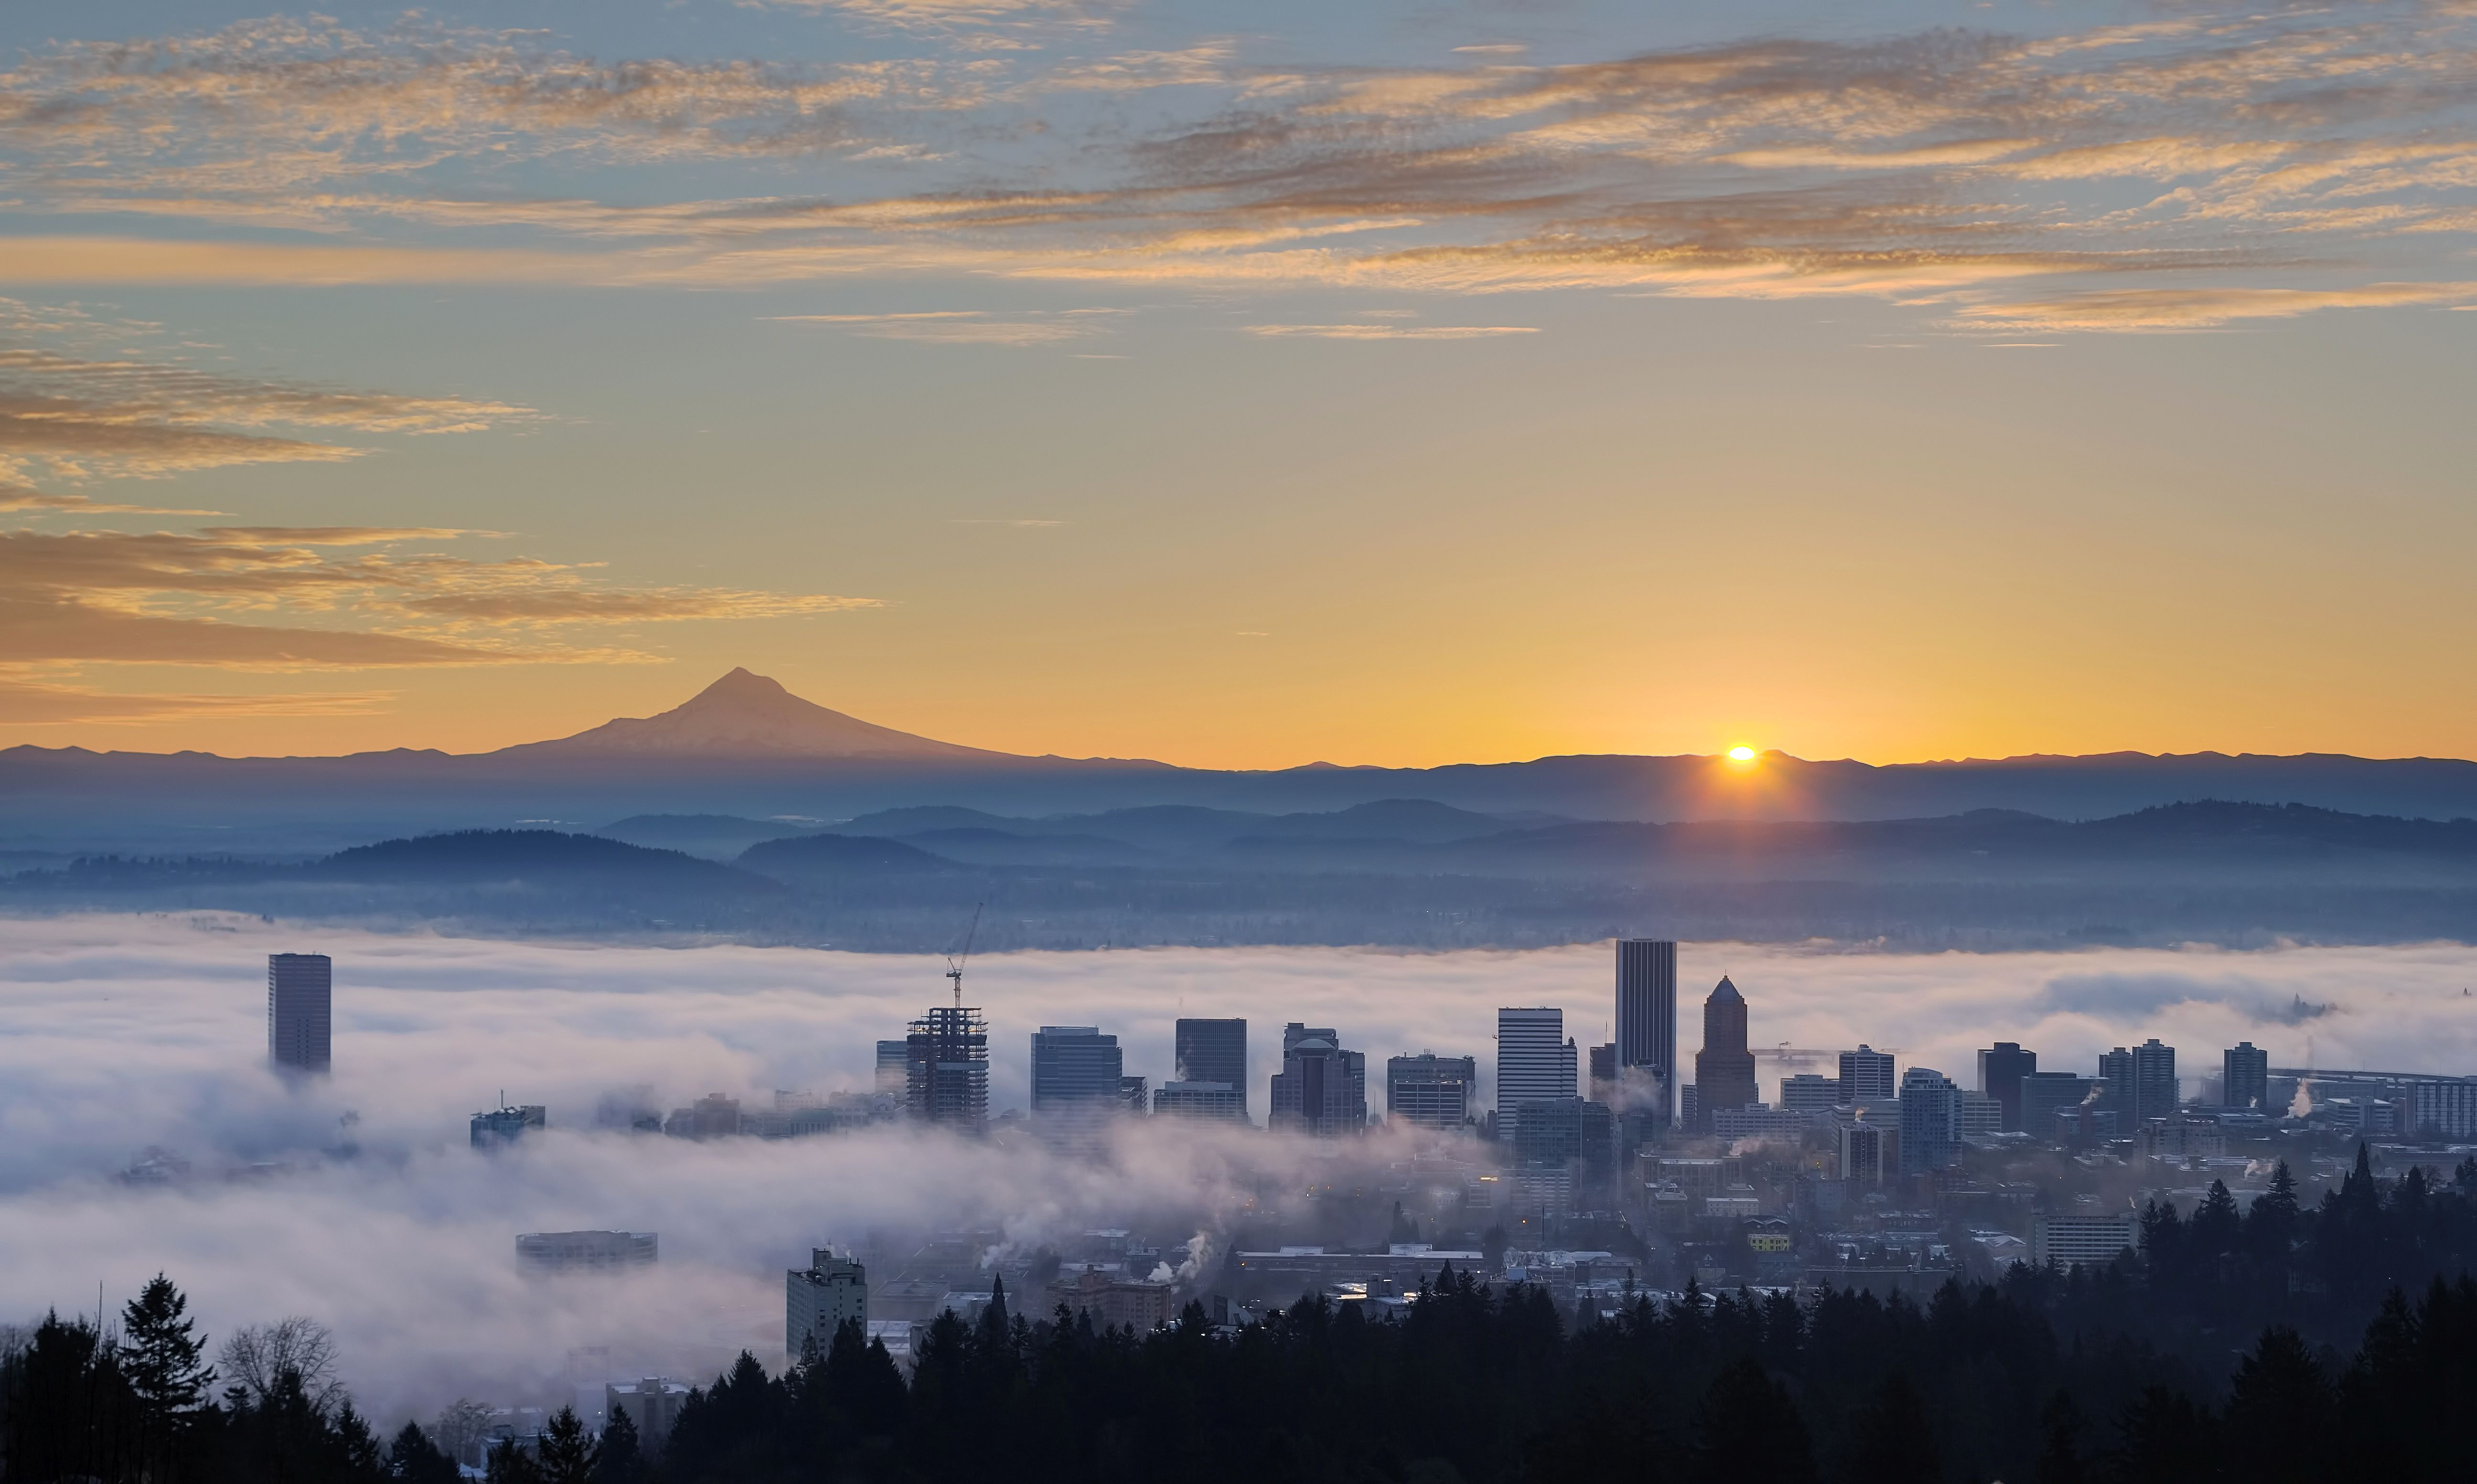 Sunrise view of downtown Portland, OR covered in fog with Mt. Hood in the background.